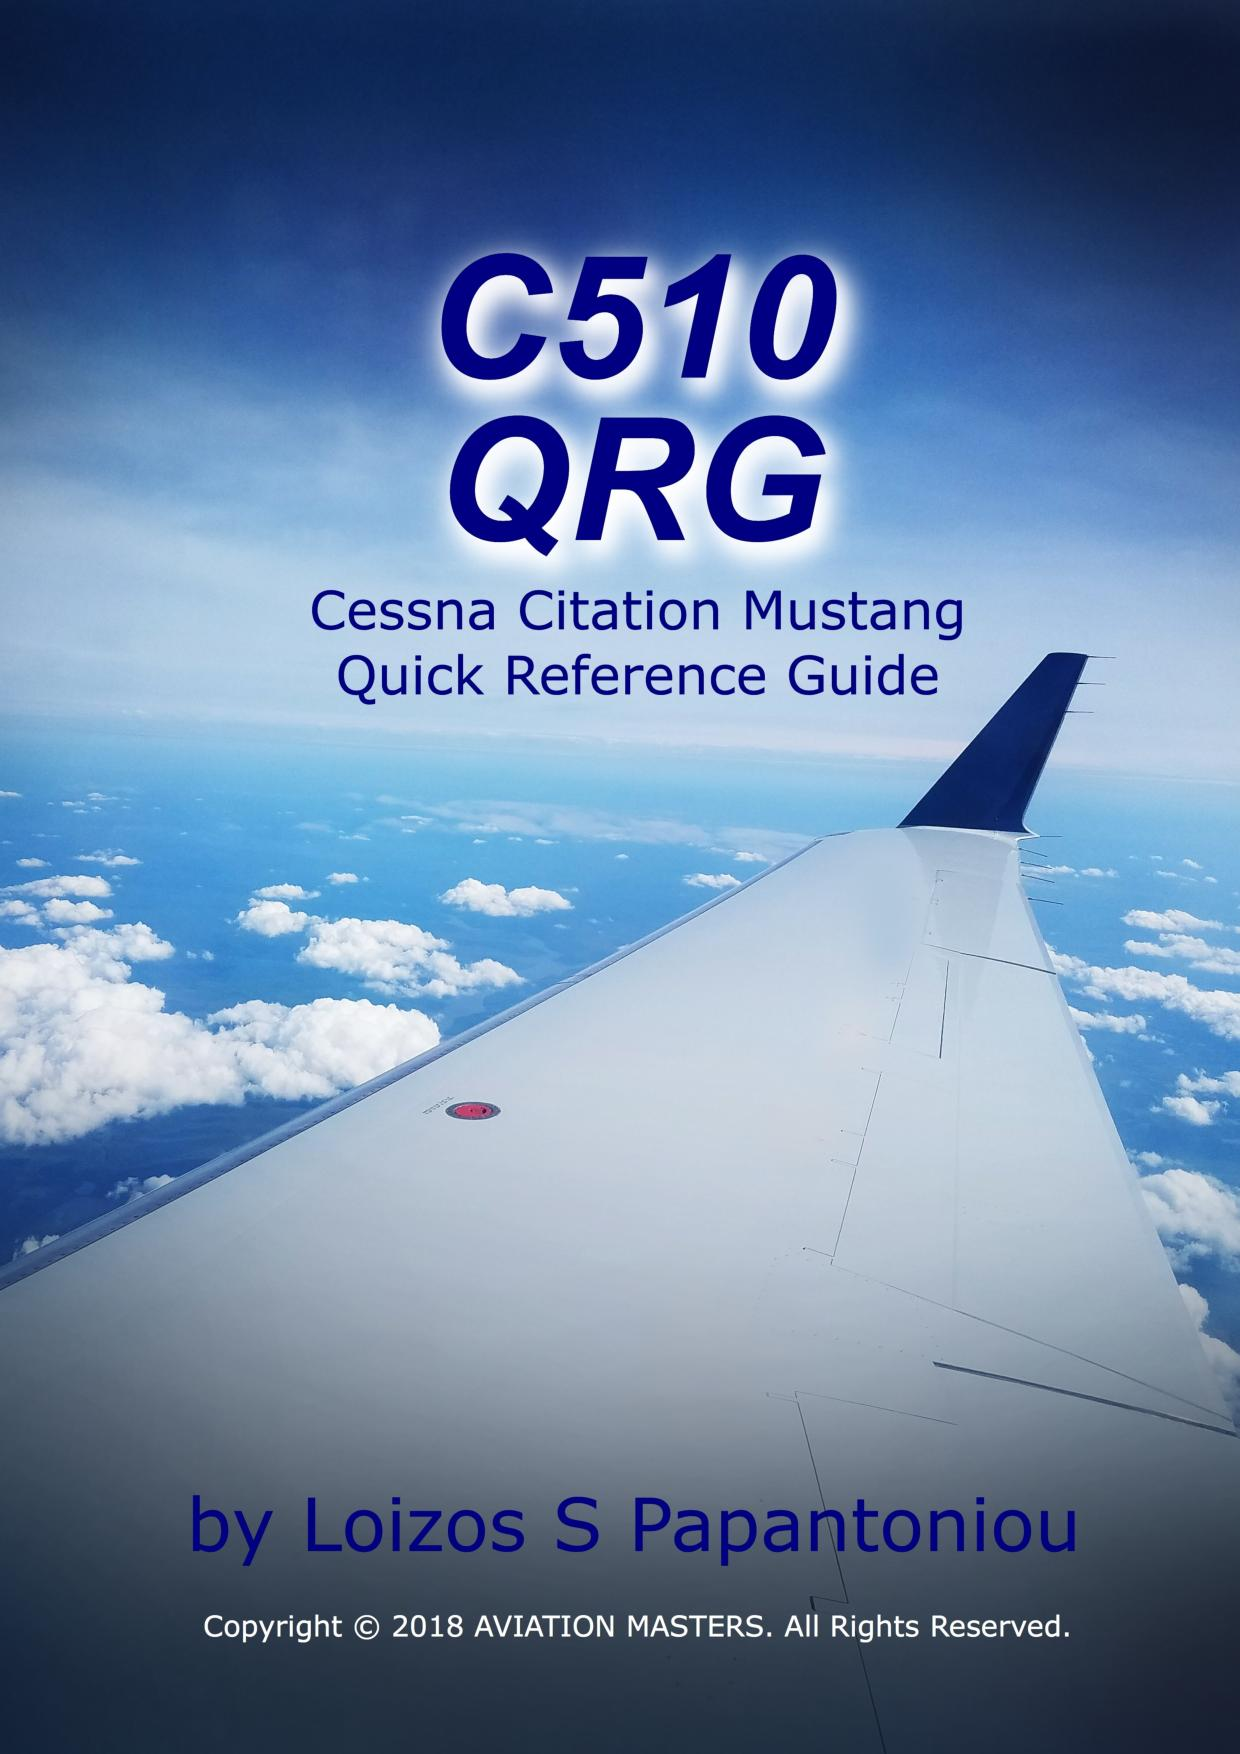 """C510 QRG"" Cessna Citation Mustang Quick Reference Guide"